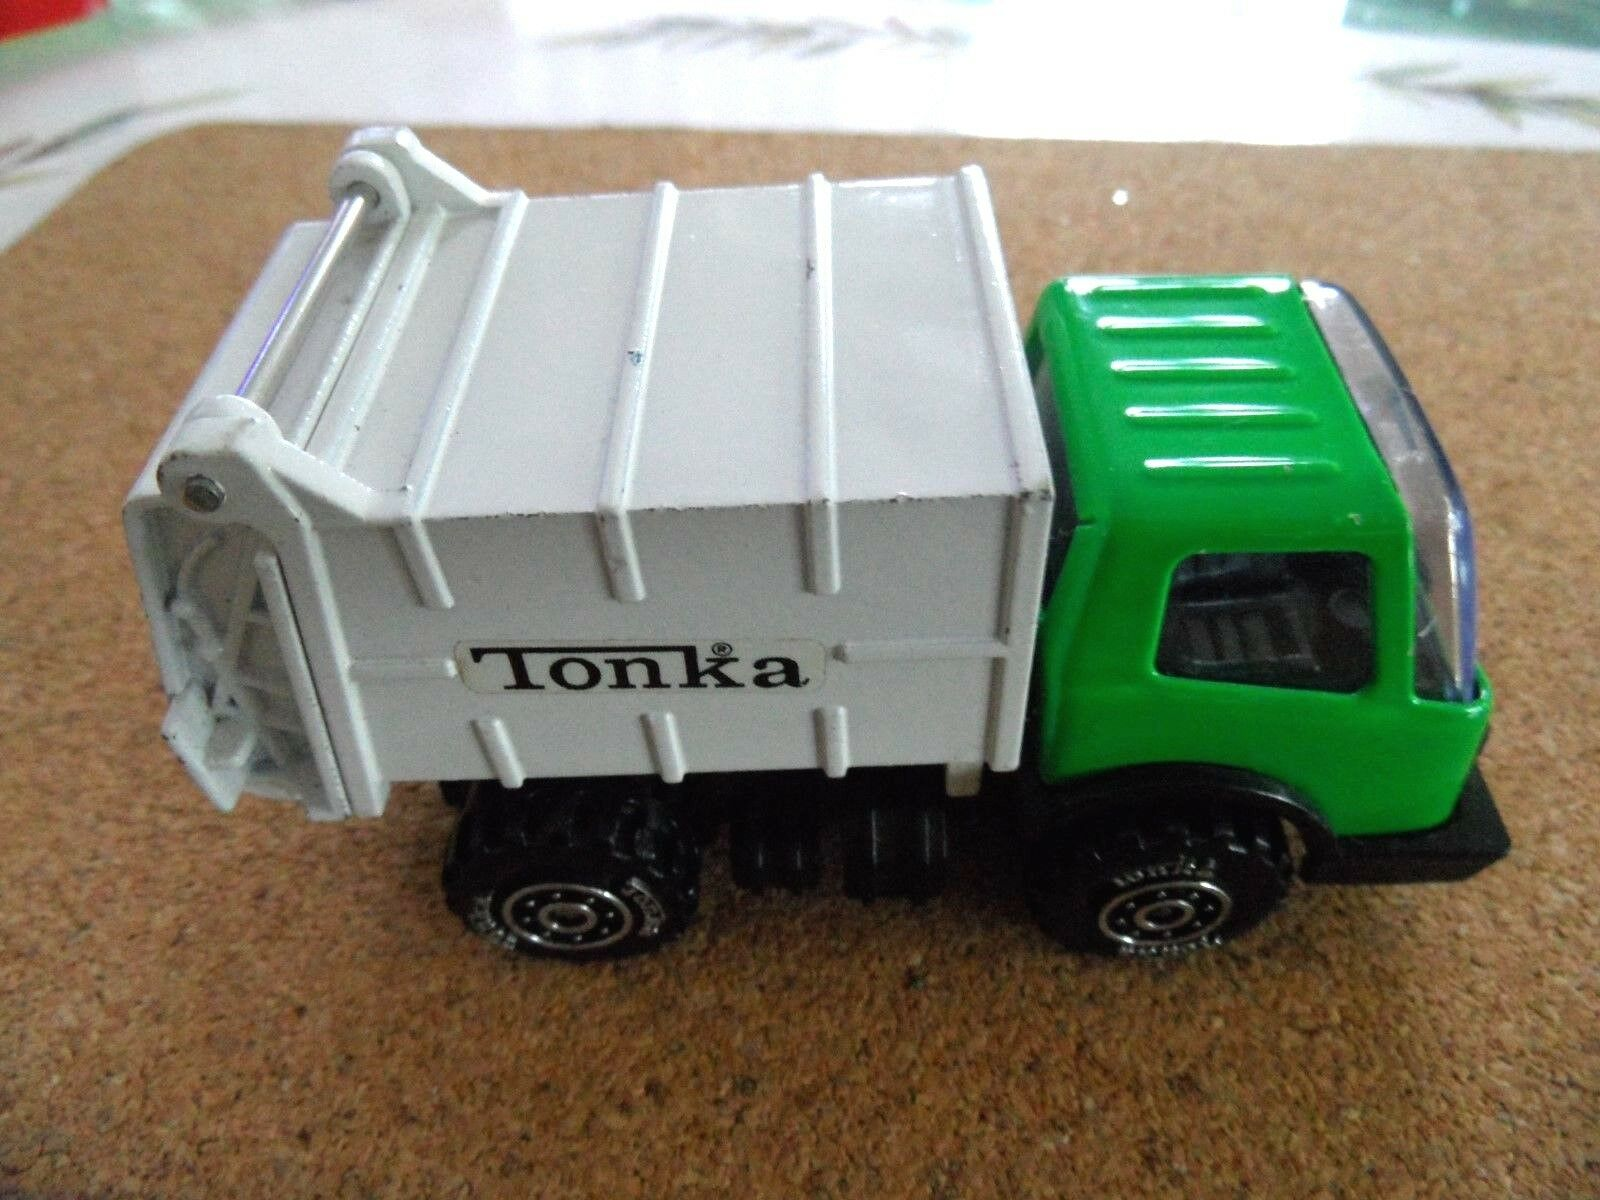 Vintage Tonka refuse garbage dust cart  10cms long  NEAR MINT CONDITION -NO BOX